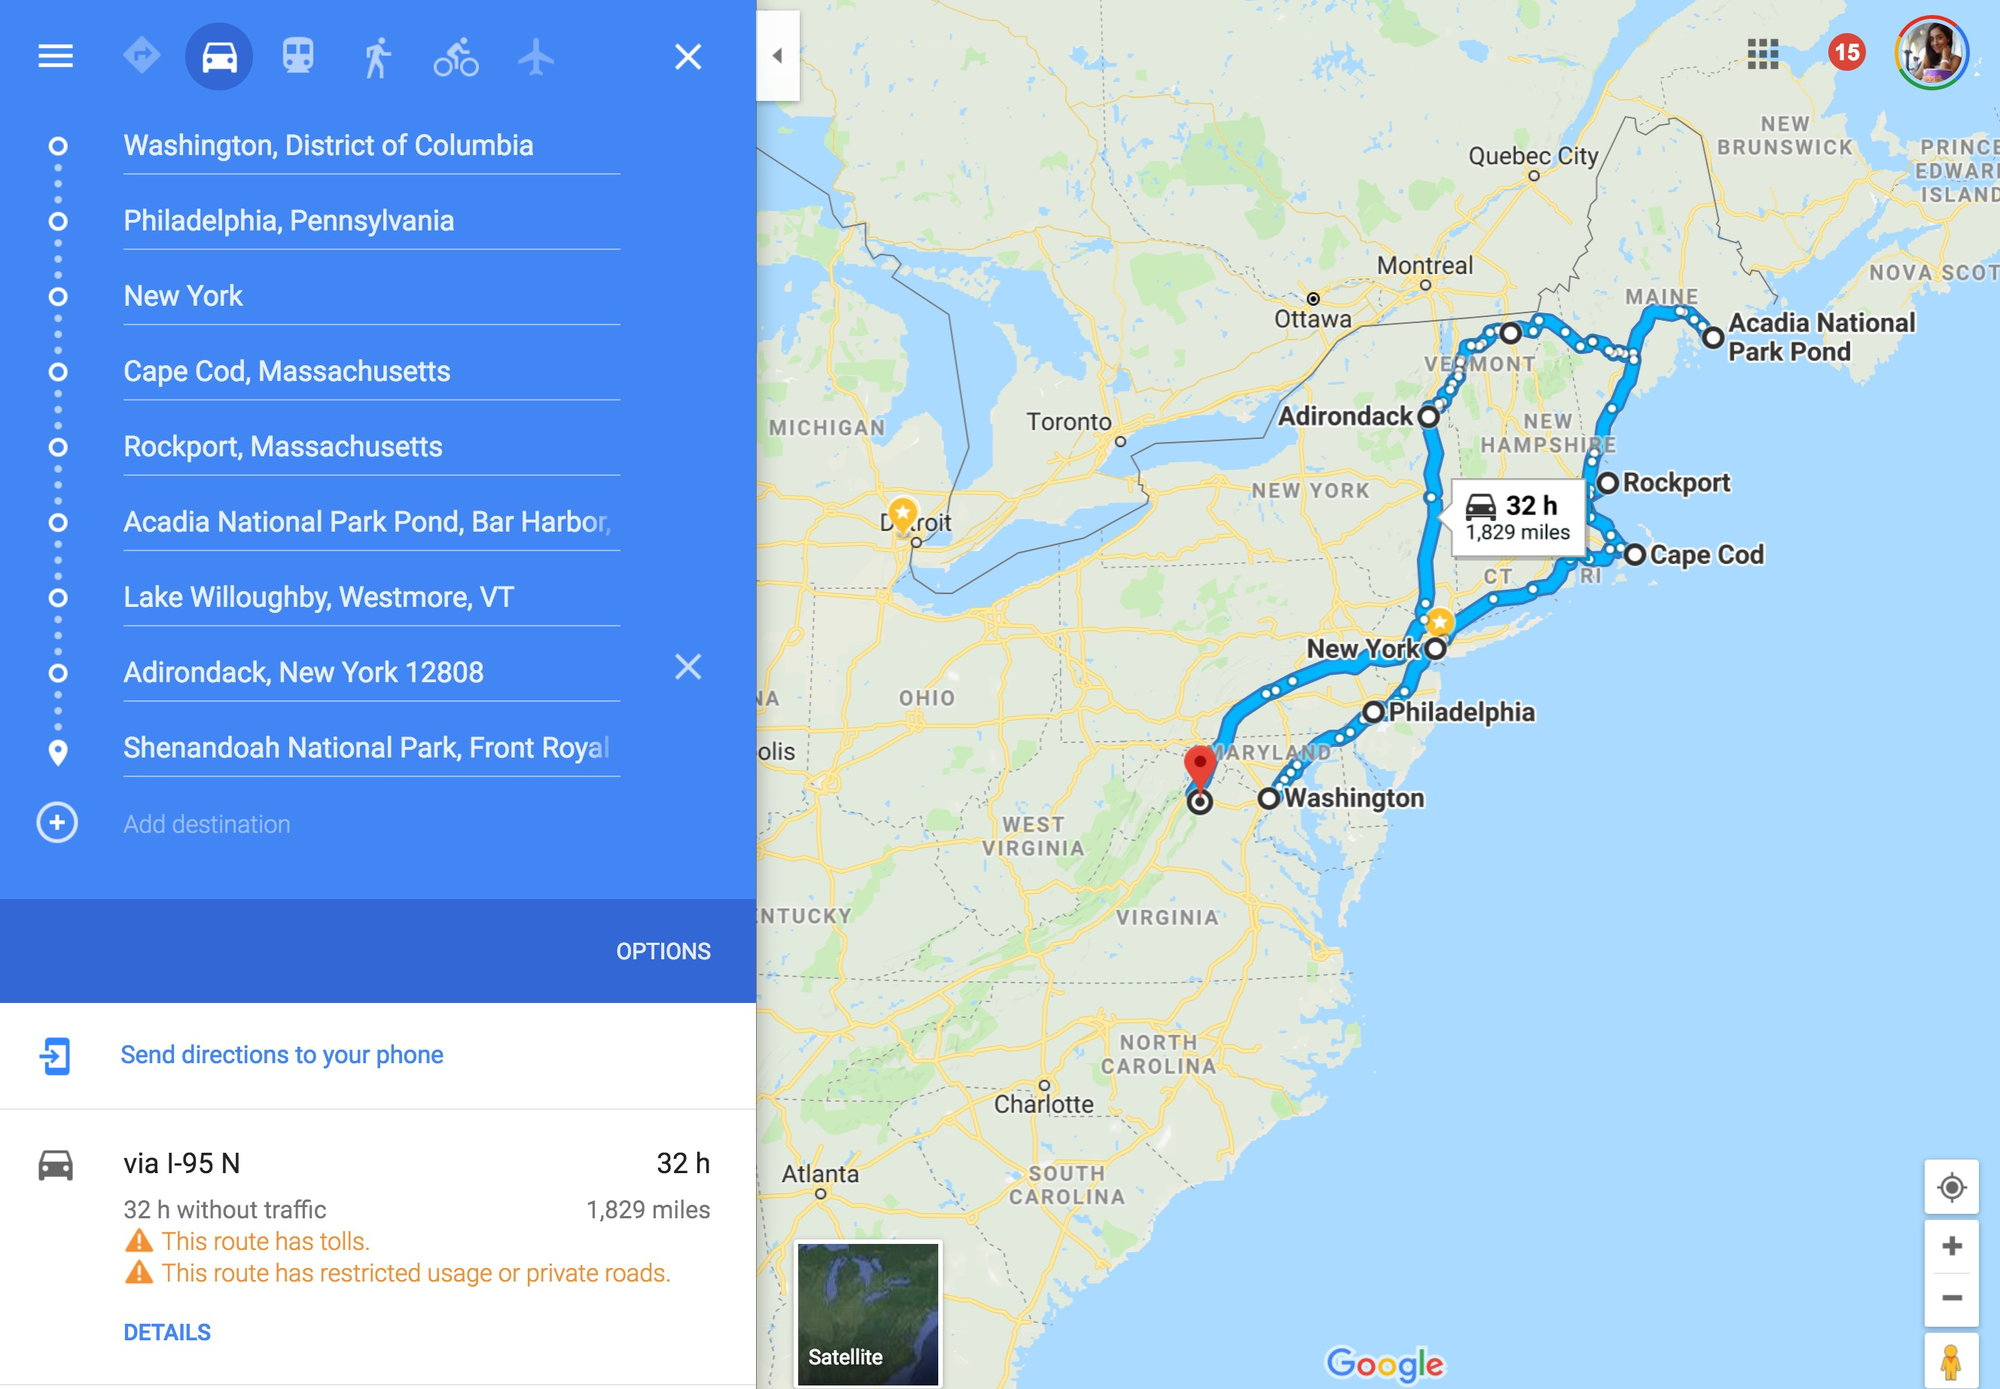 US East Coast Road Trip Itinerary Suggestions - Fodor\'s Travel Talk ...